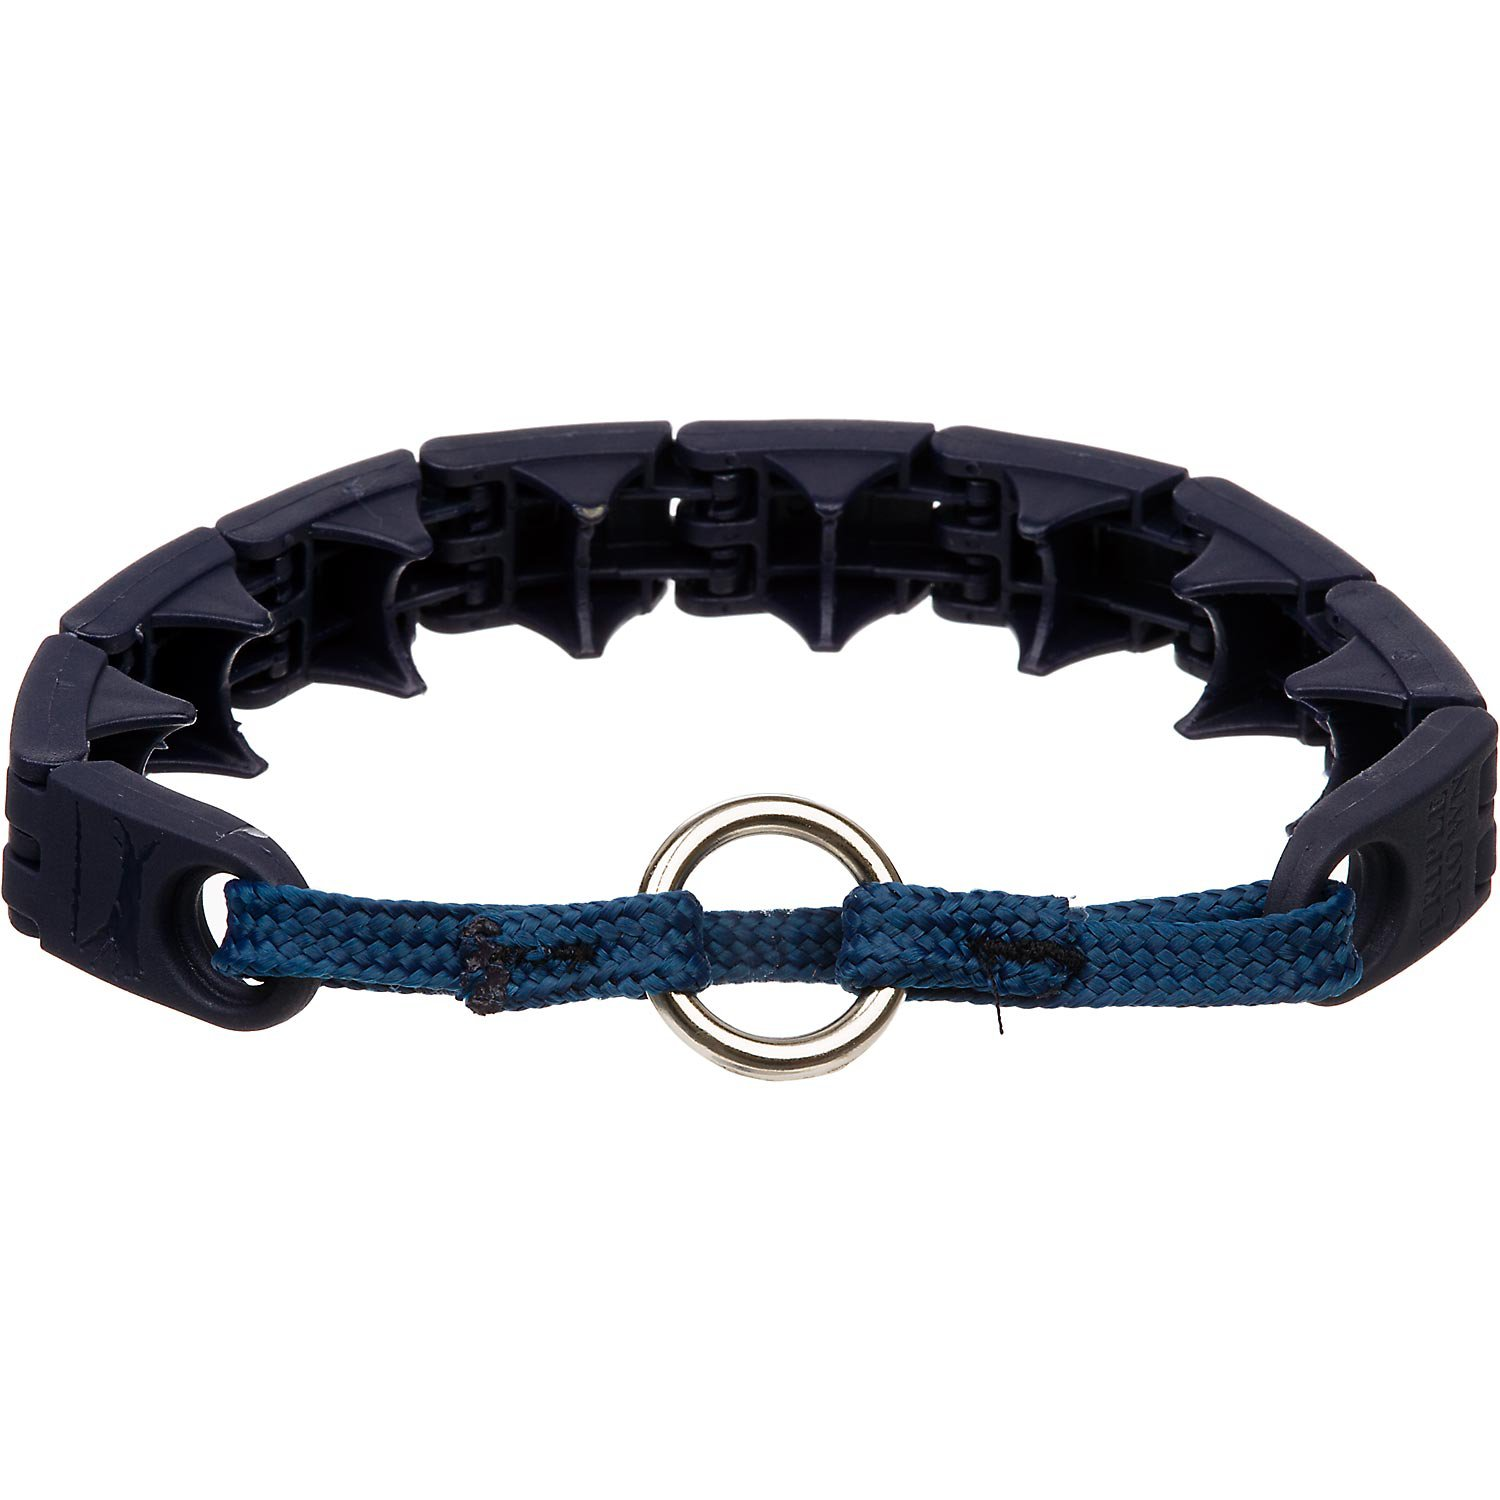 Plastic Dog Training Collar